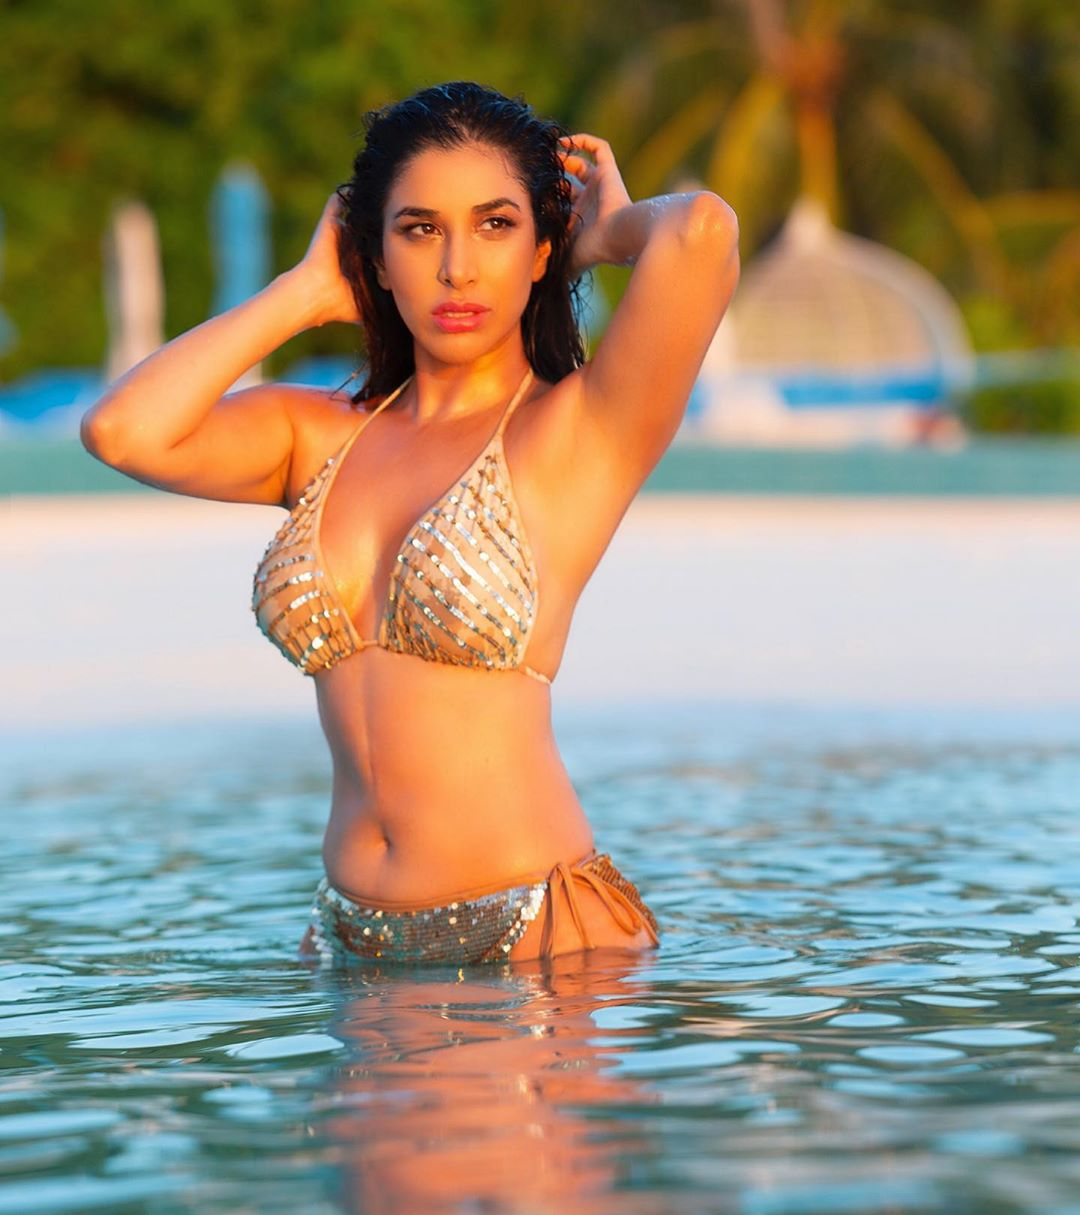 Sophie choudry 2